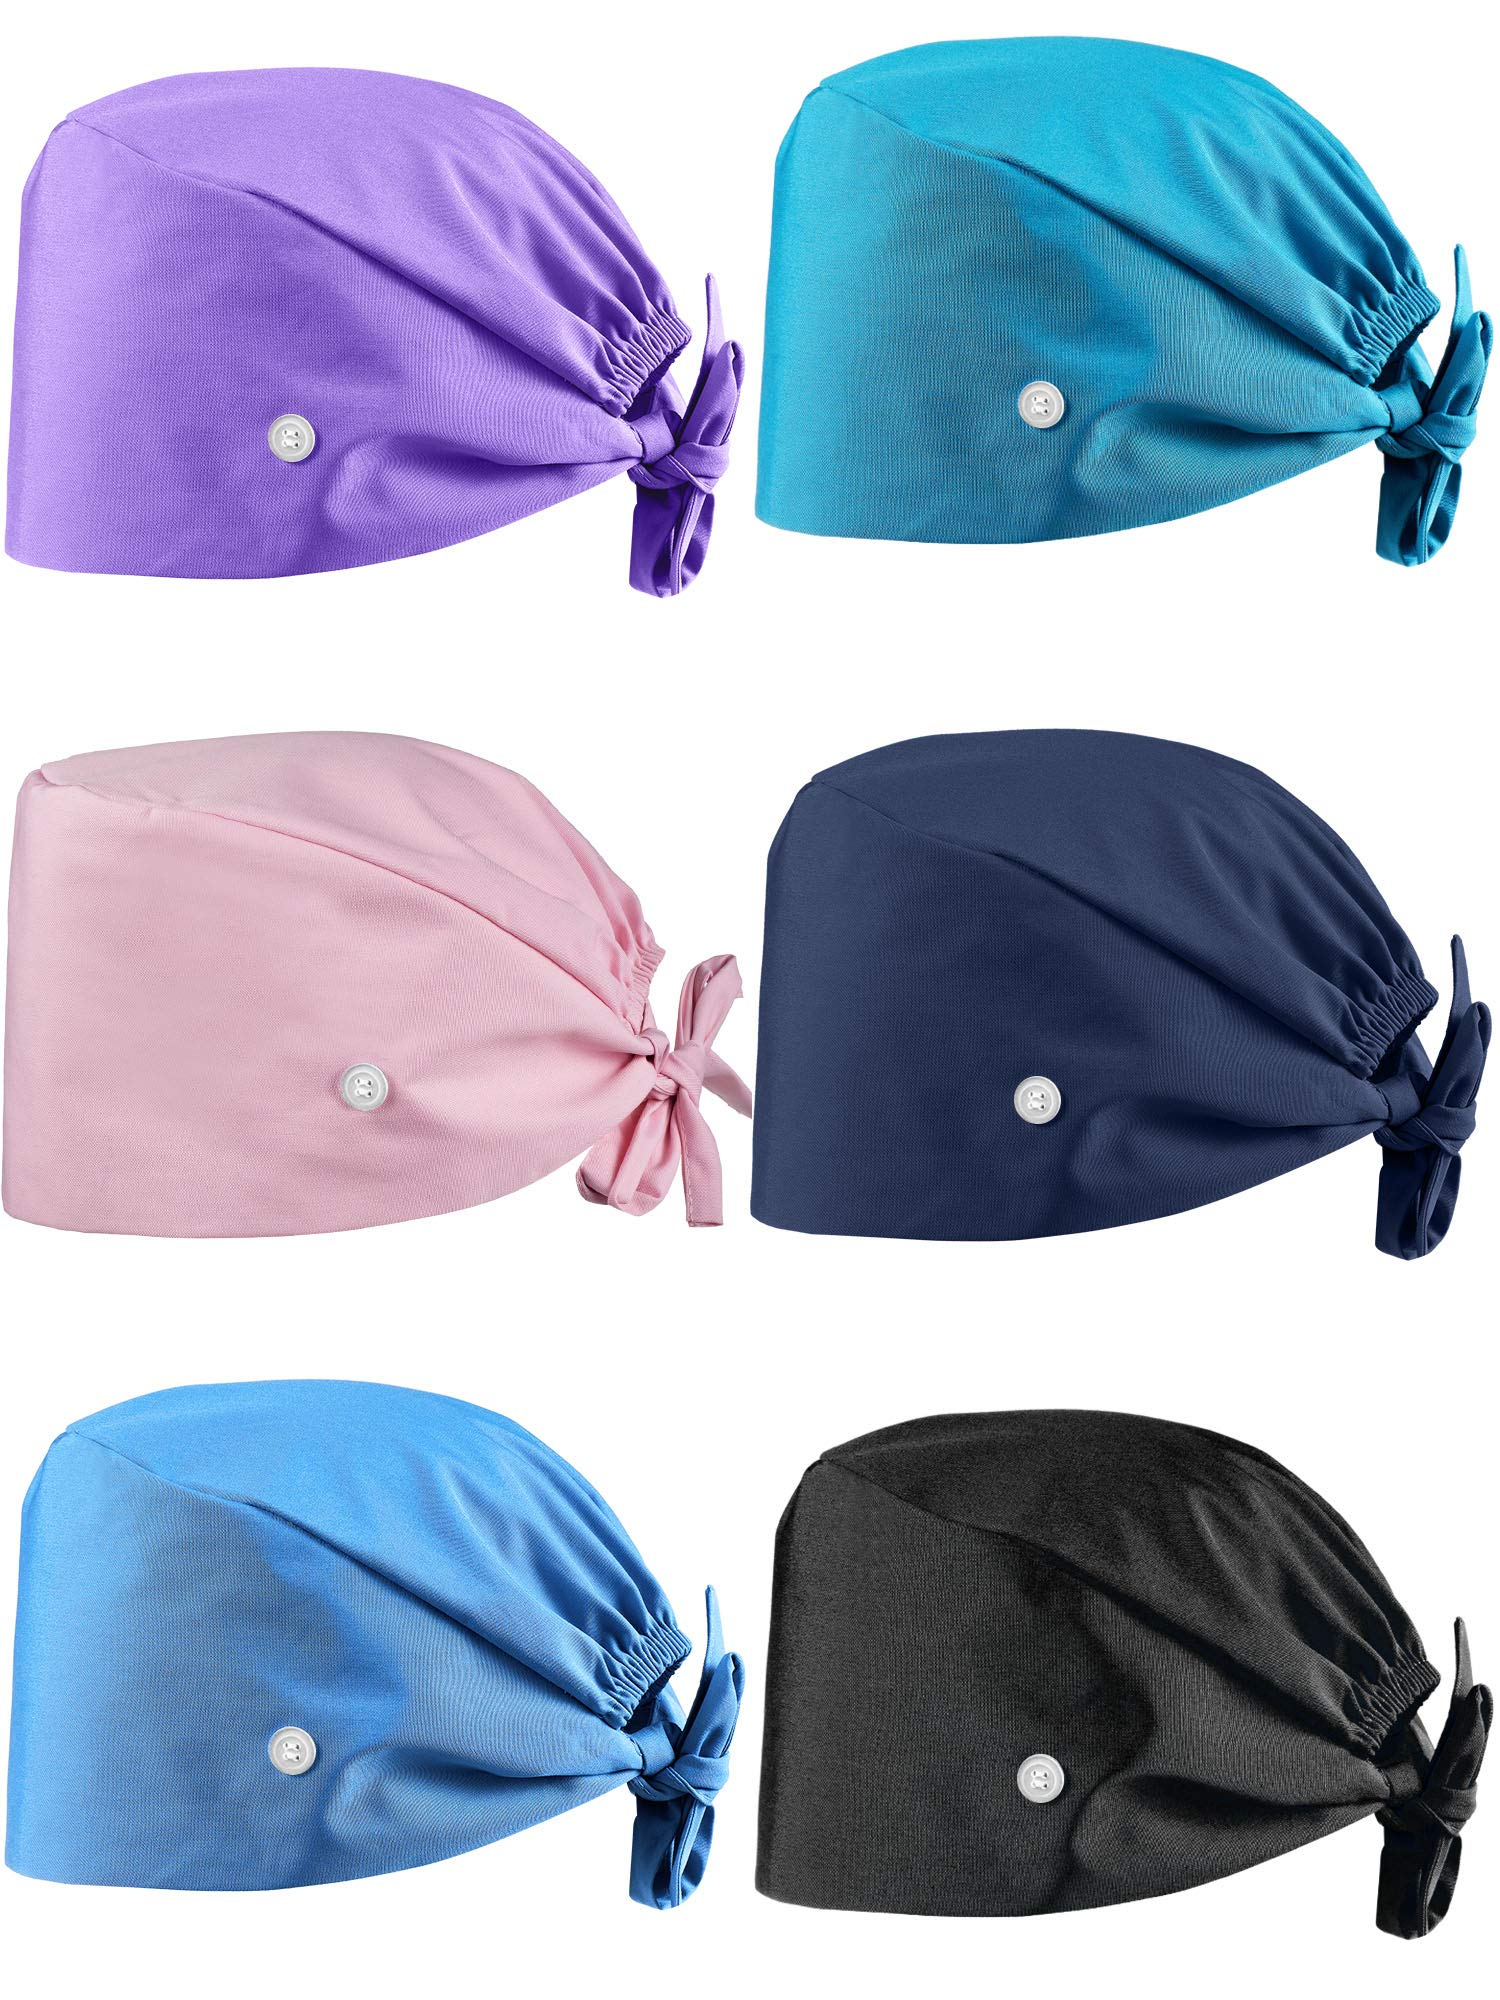 SATINIOR 6 Pieces Gourd-Shaped Working Caps with Buttons Adjustable Bouffant Hats Multicolor Tie Back Caps